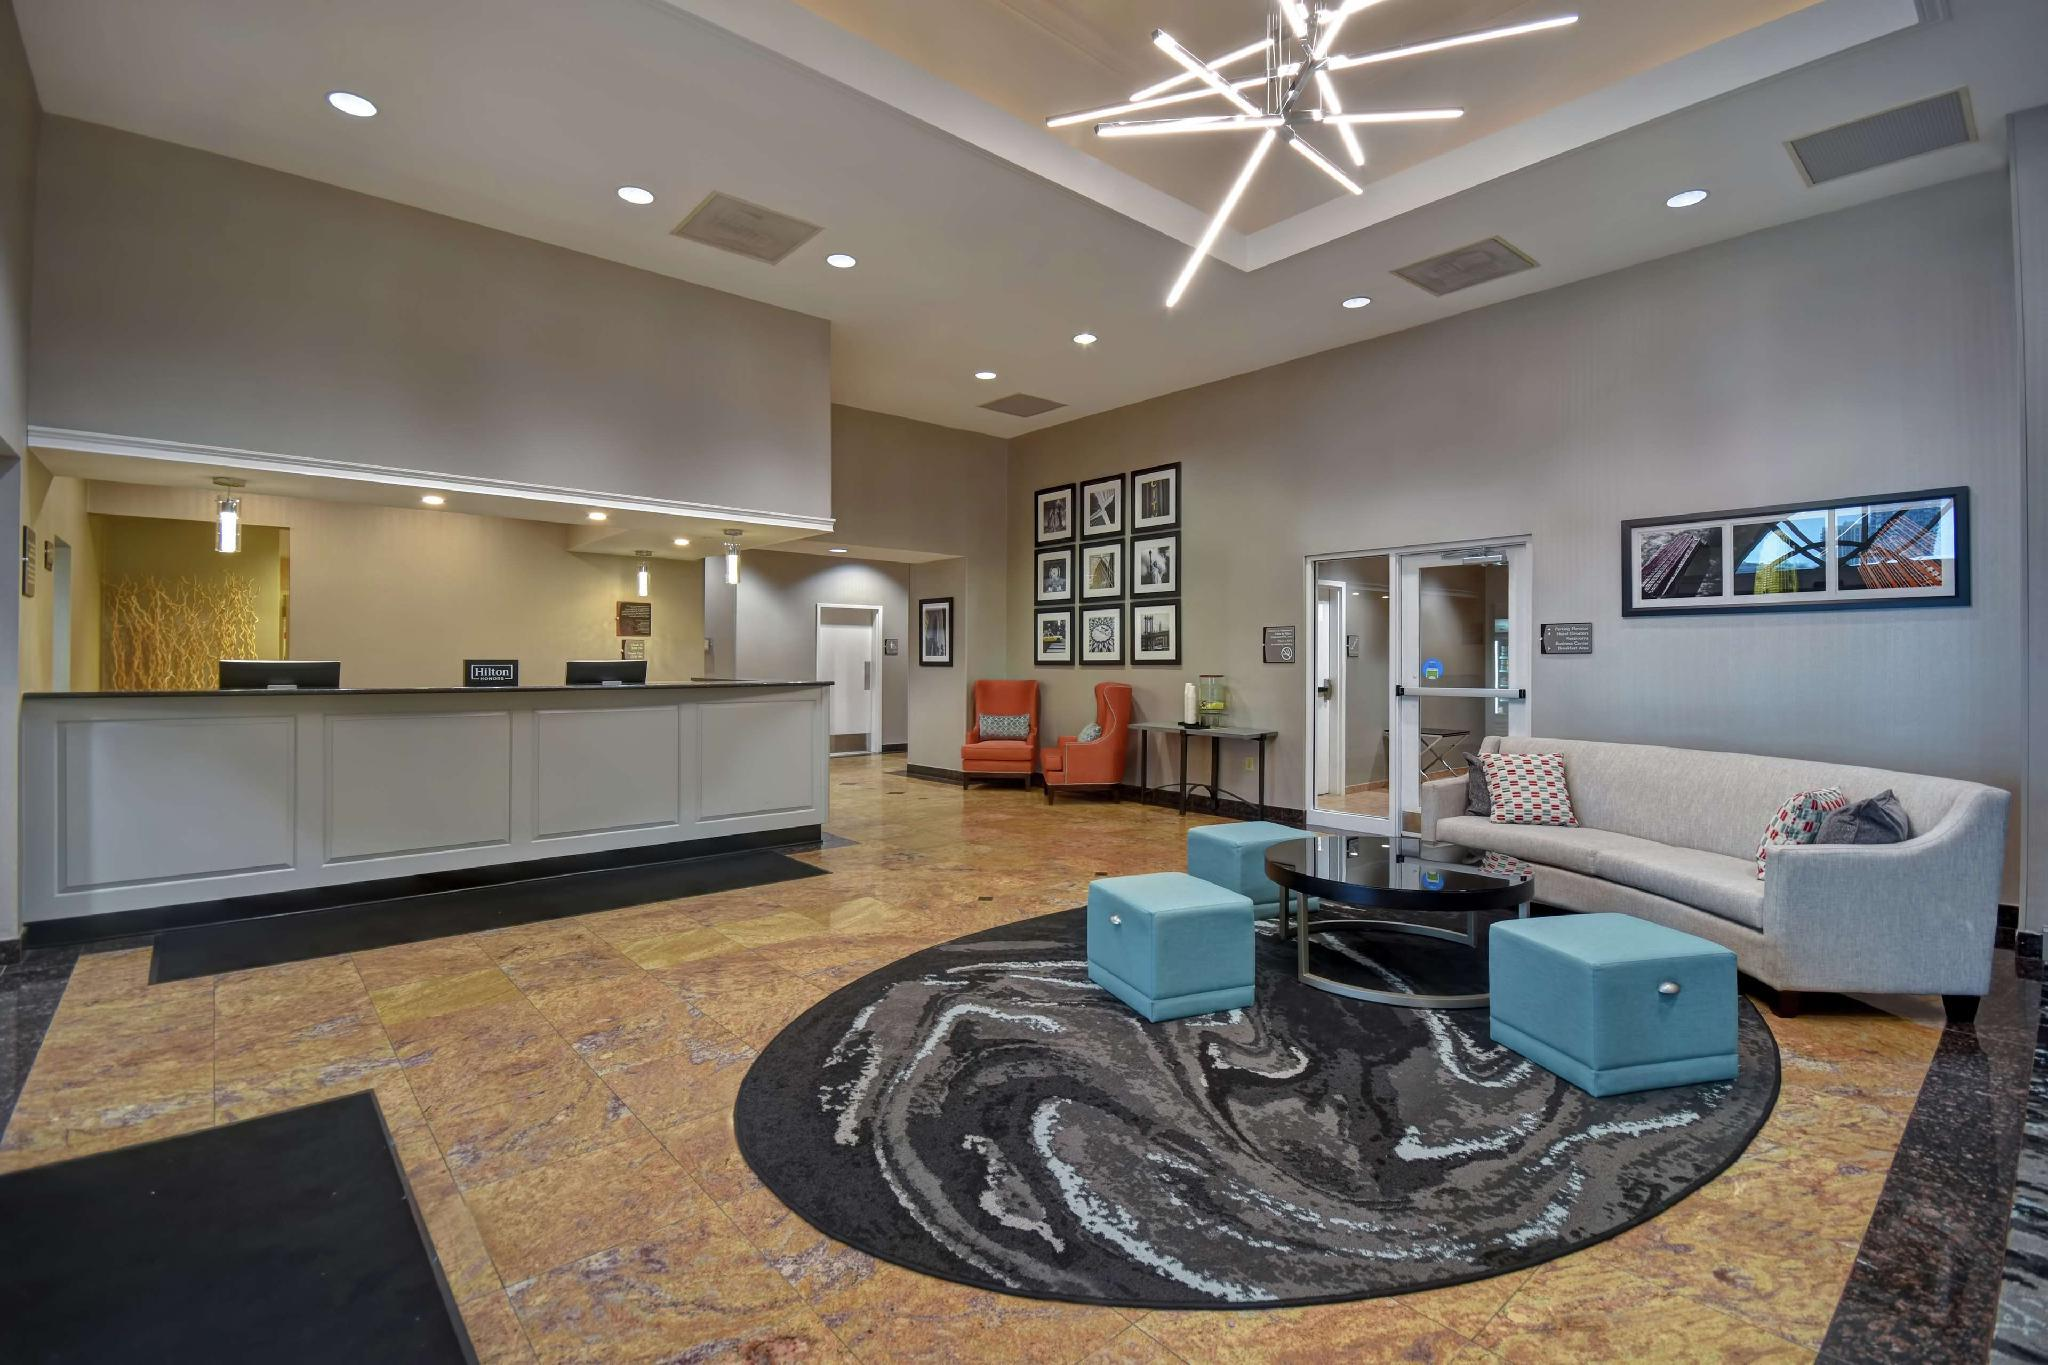 Homewood Suites by Hilton Edgewater Hotel, Bergen